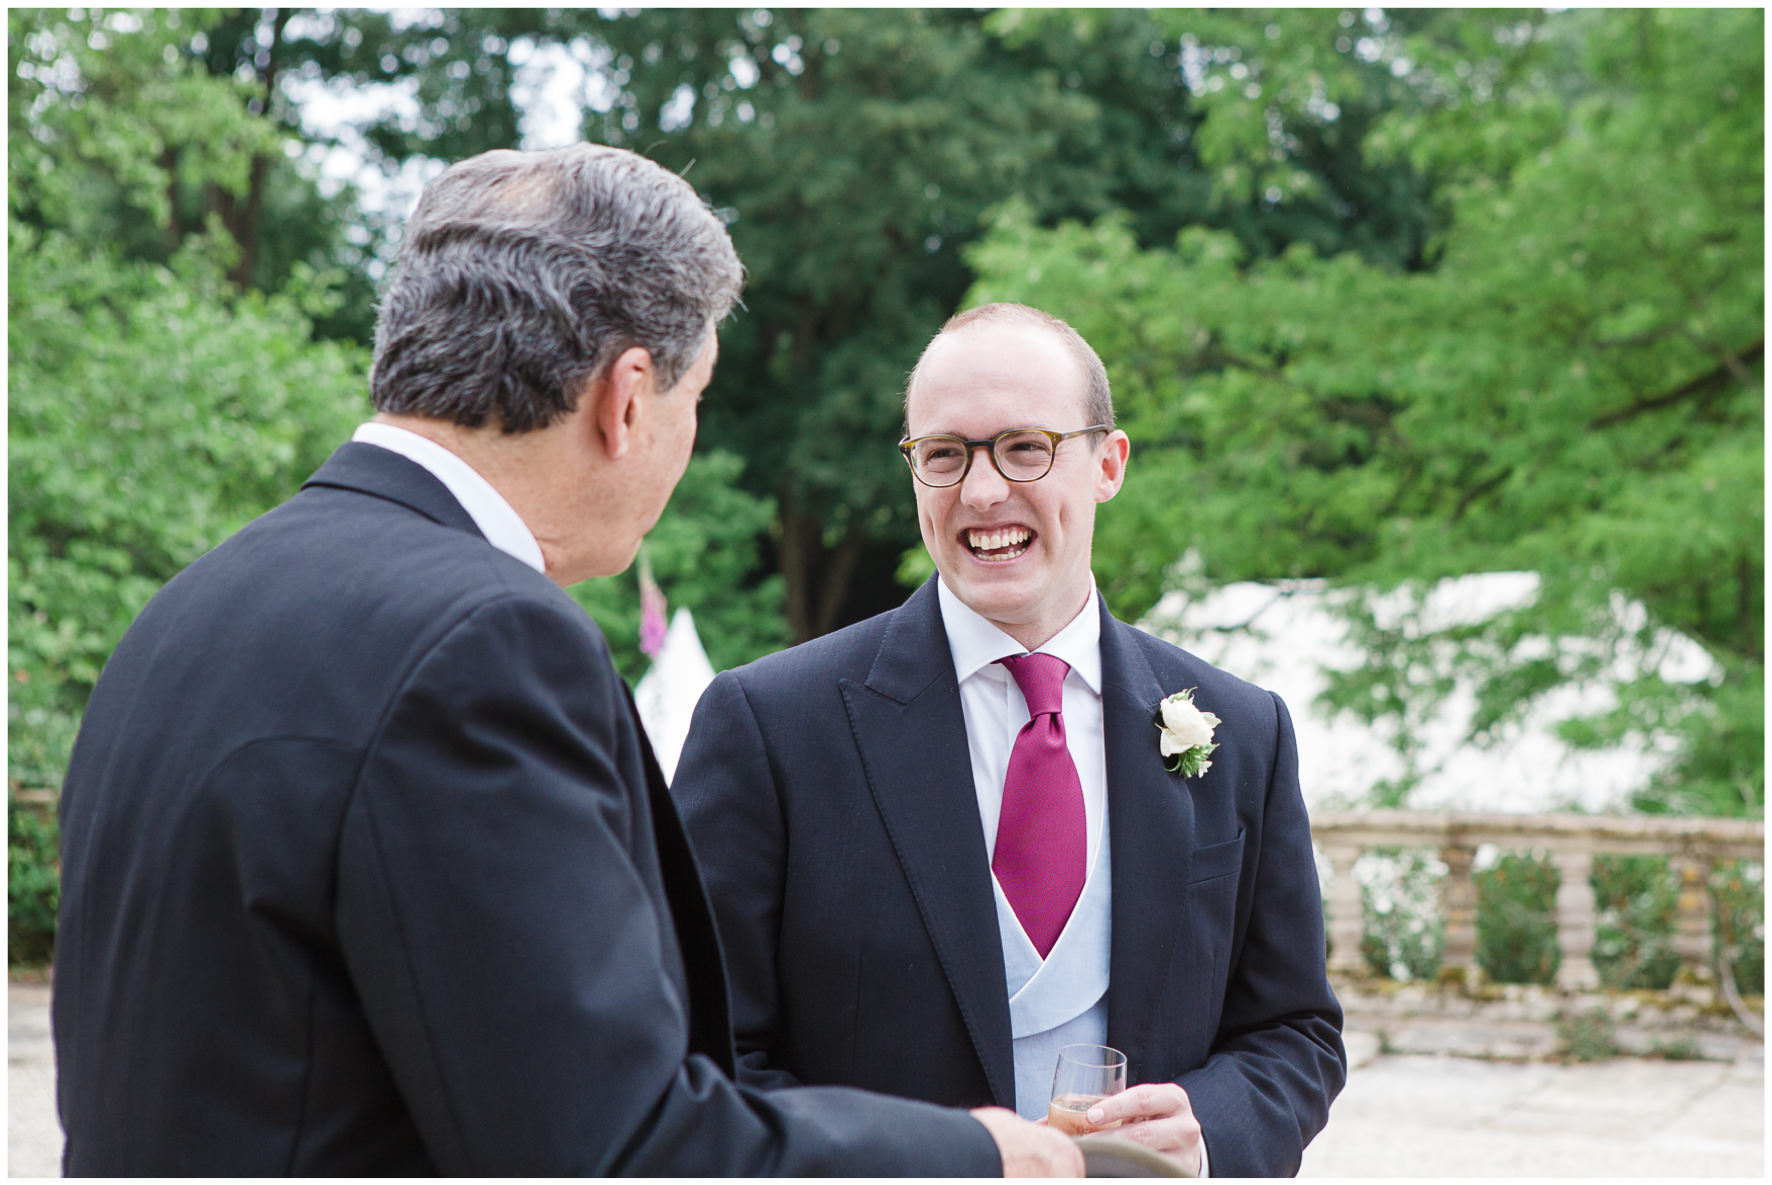 Lucy Davenport Photography, Cornwell Manor, wedding venue, Oxfordshire, Cotswold wedding, groom